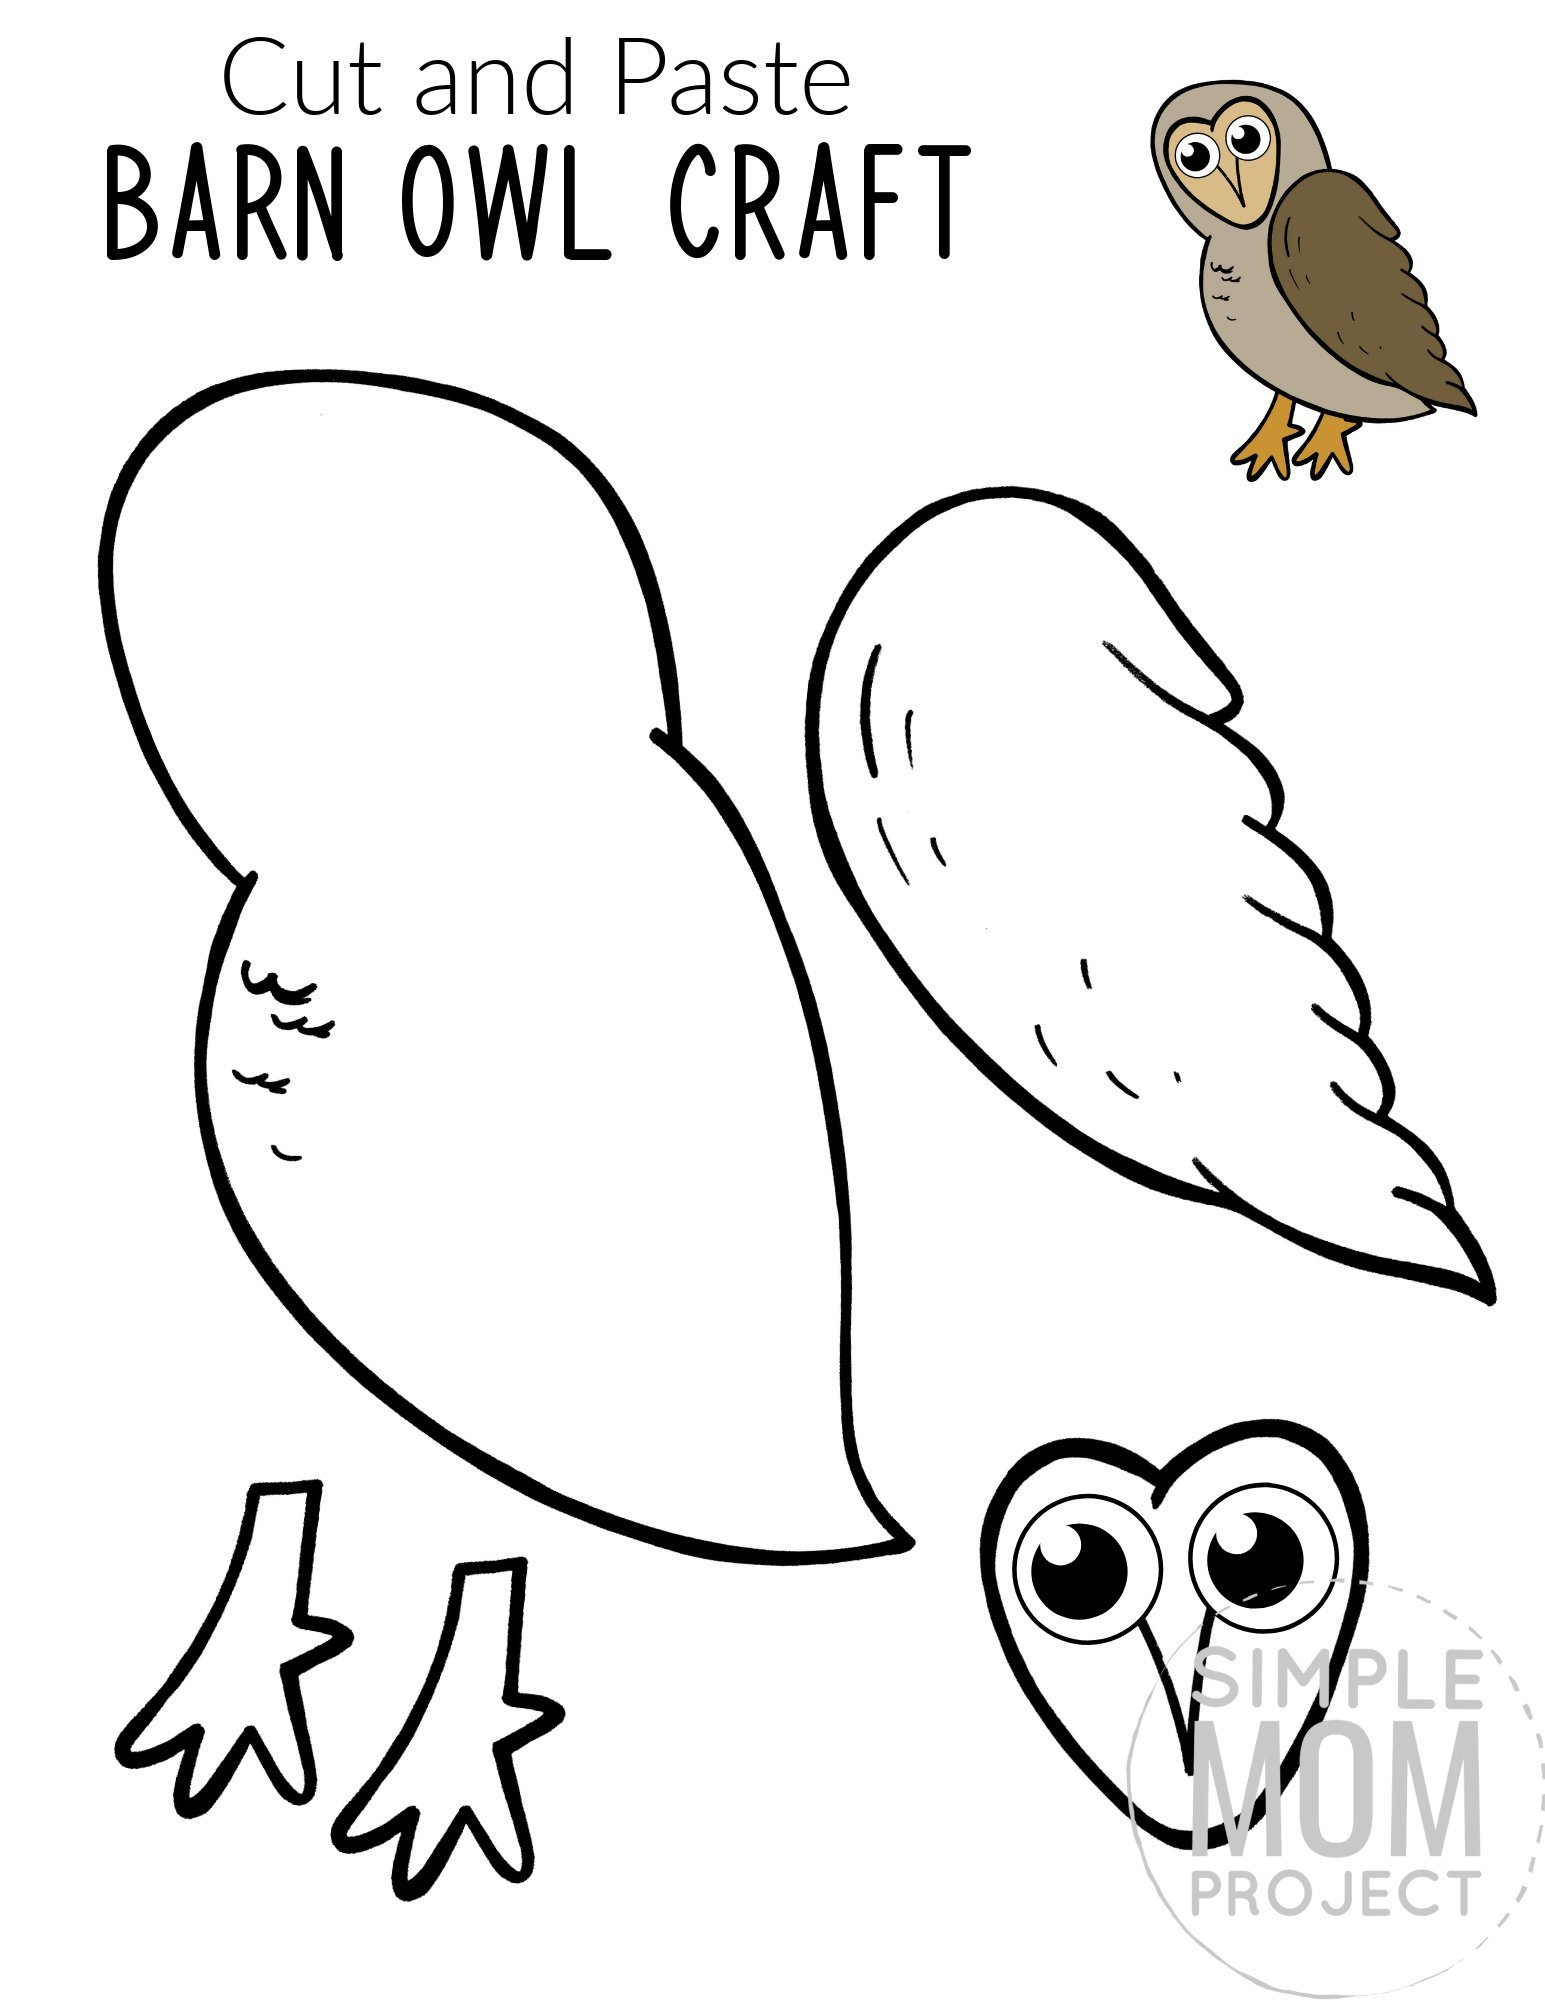 Free Printable Barn Owl Craft for Kids, preschoolers toddlers and kindergartners